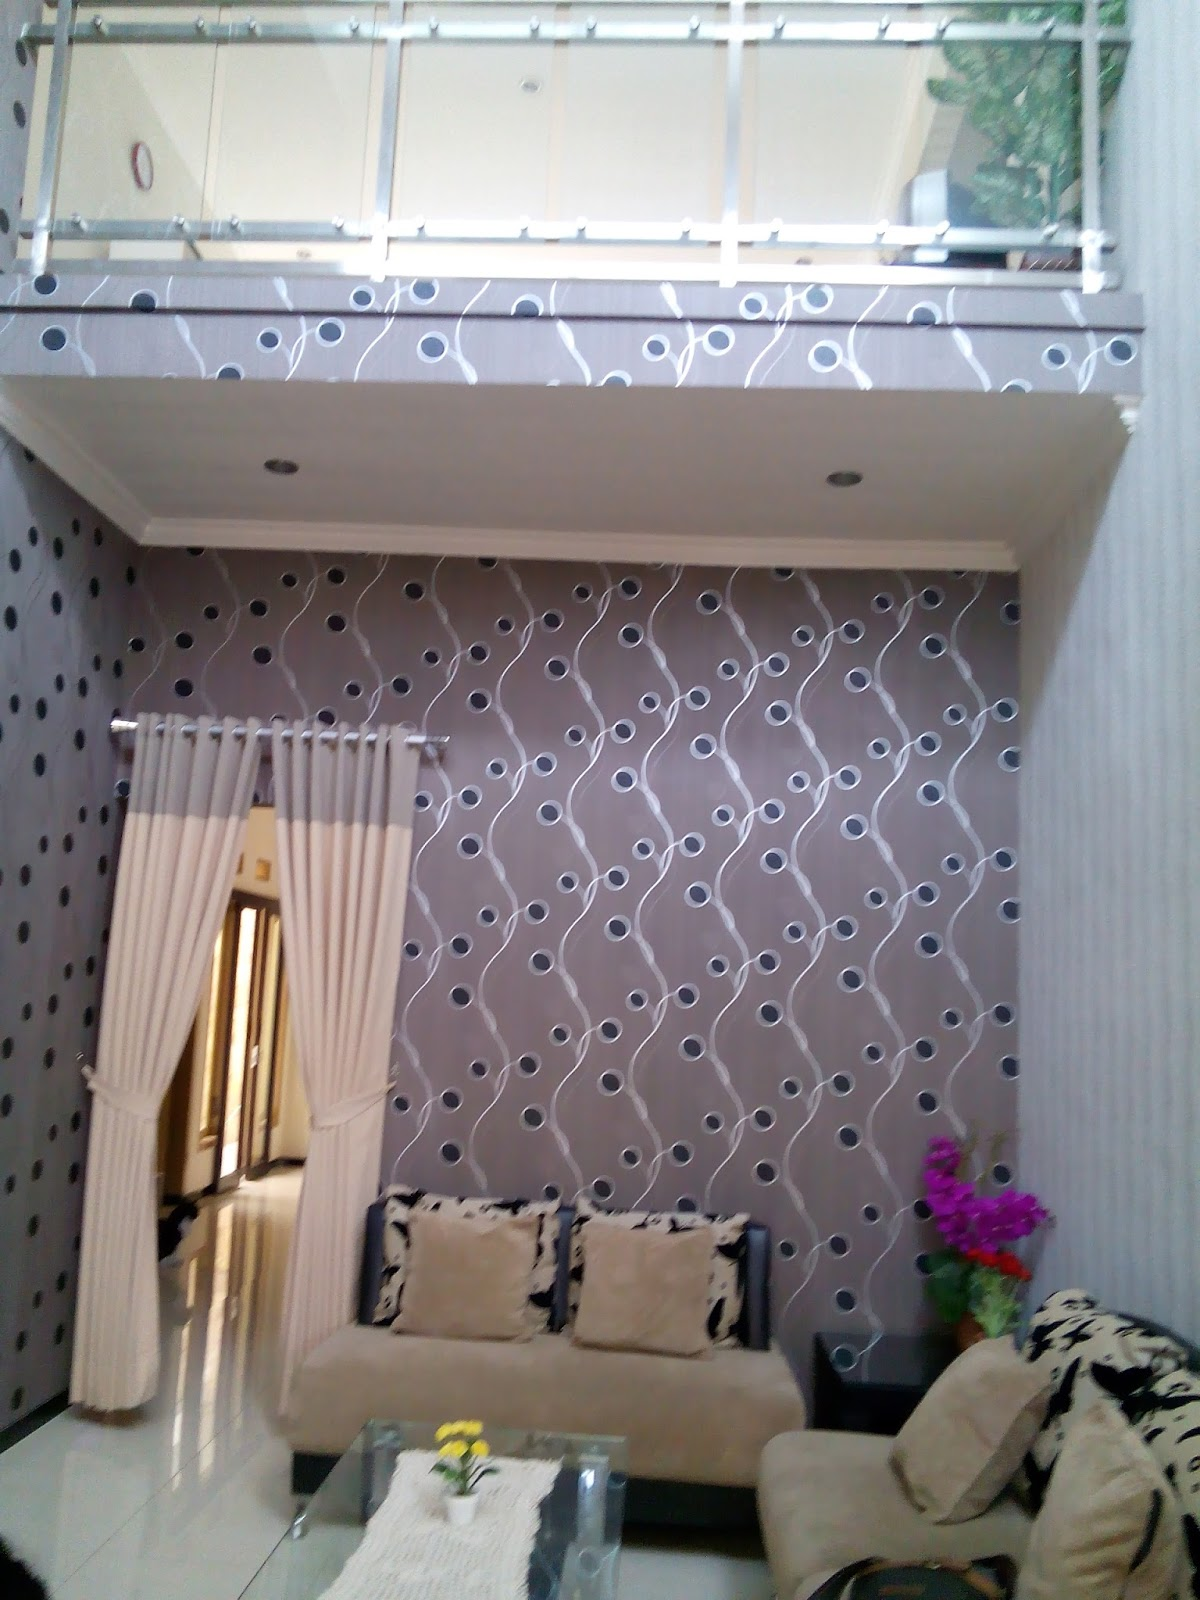 Wallpaper dinding rumah minimalis kamar murah home for Wallpaper home murah